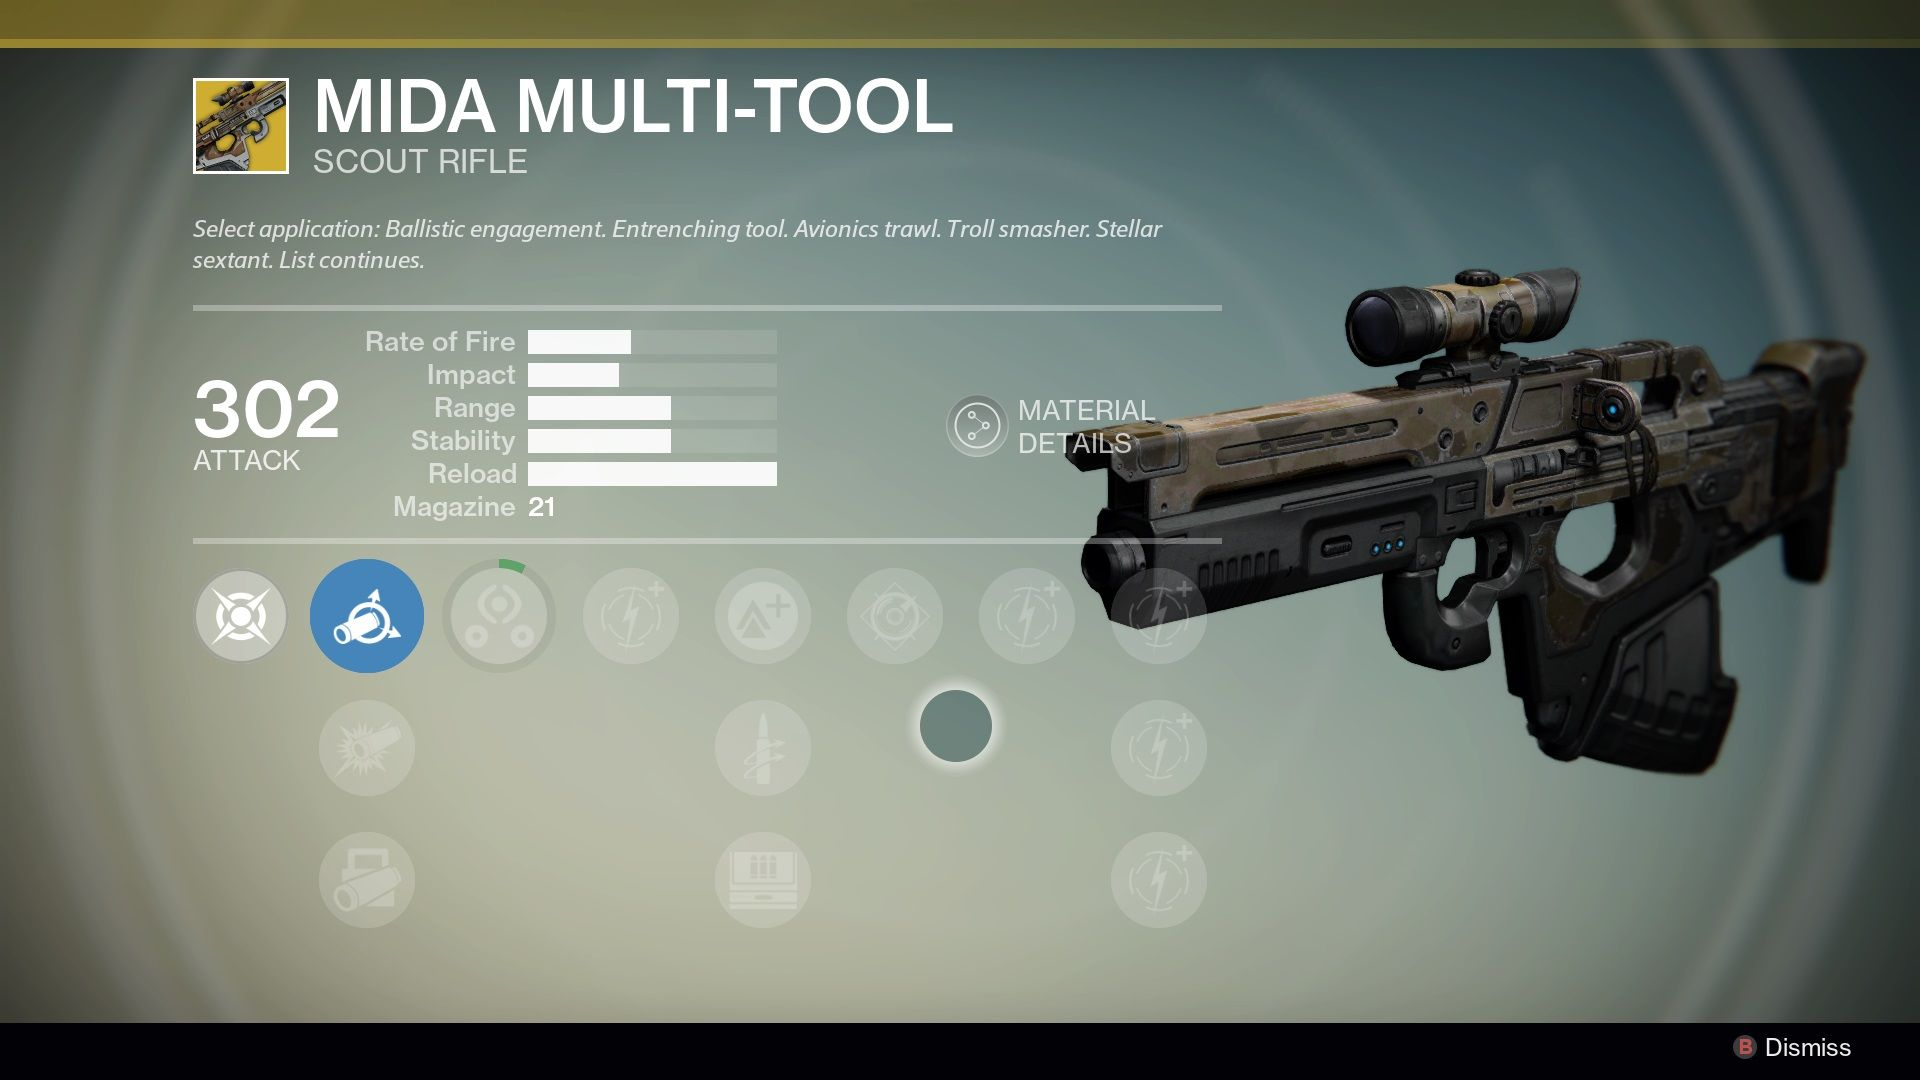 Mida Multi-Tool/ exotic scout rifle